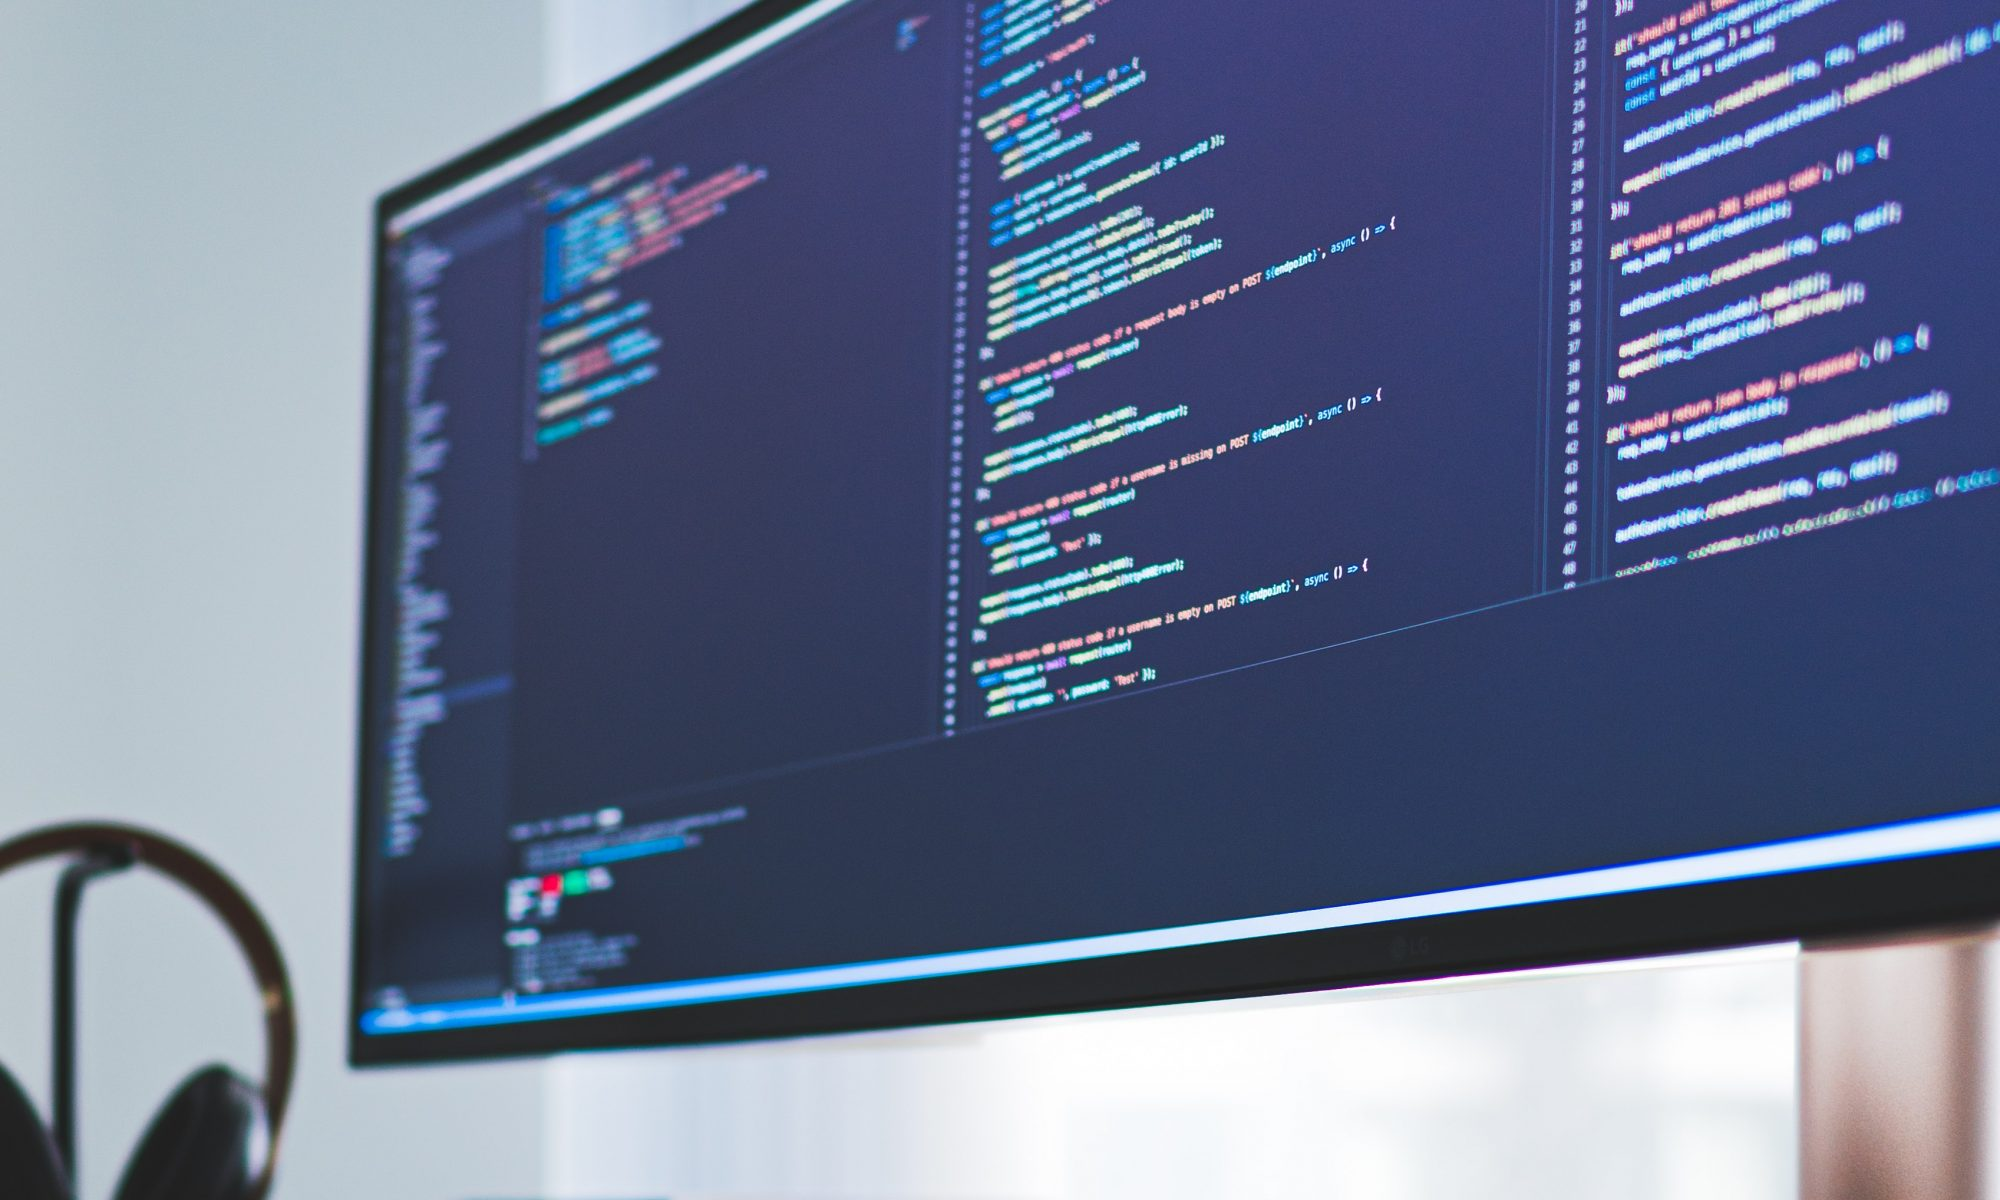 We need to identify the web development trend, approach, and techniques gaining popularity this year to focus on it in 2021.